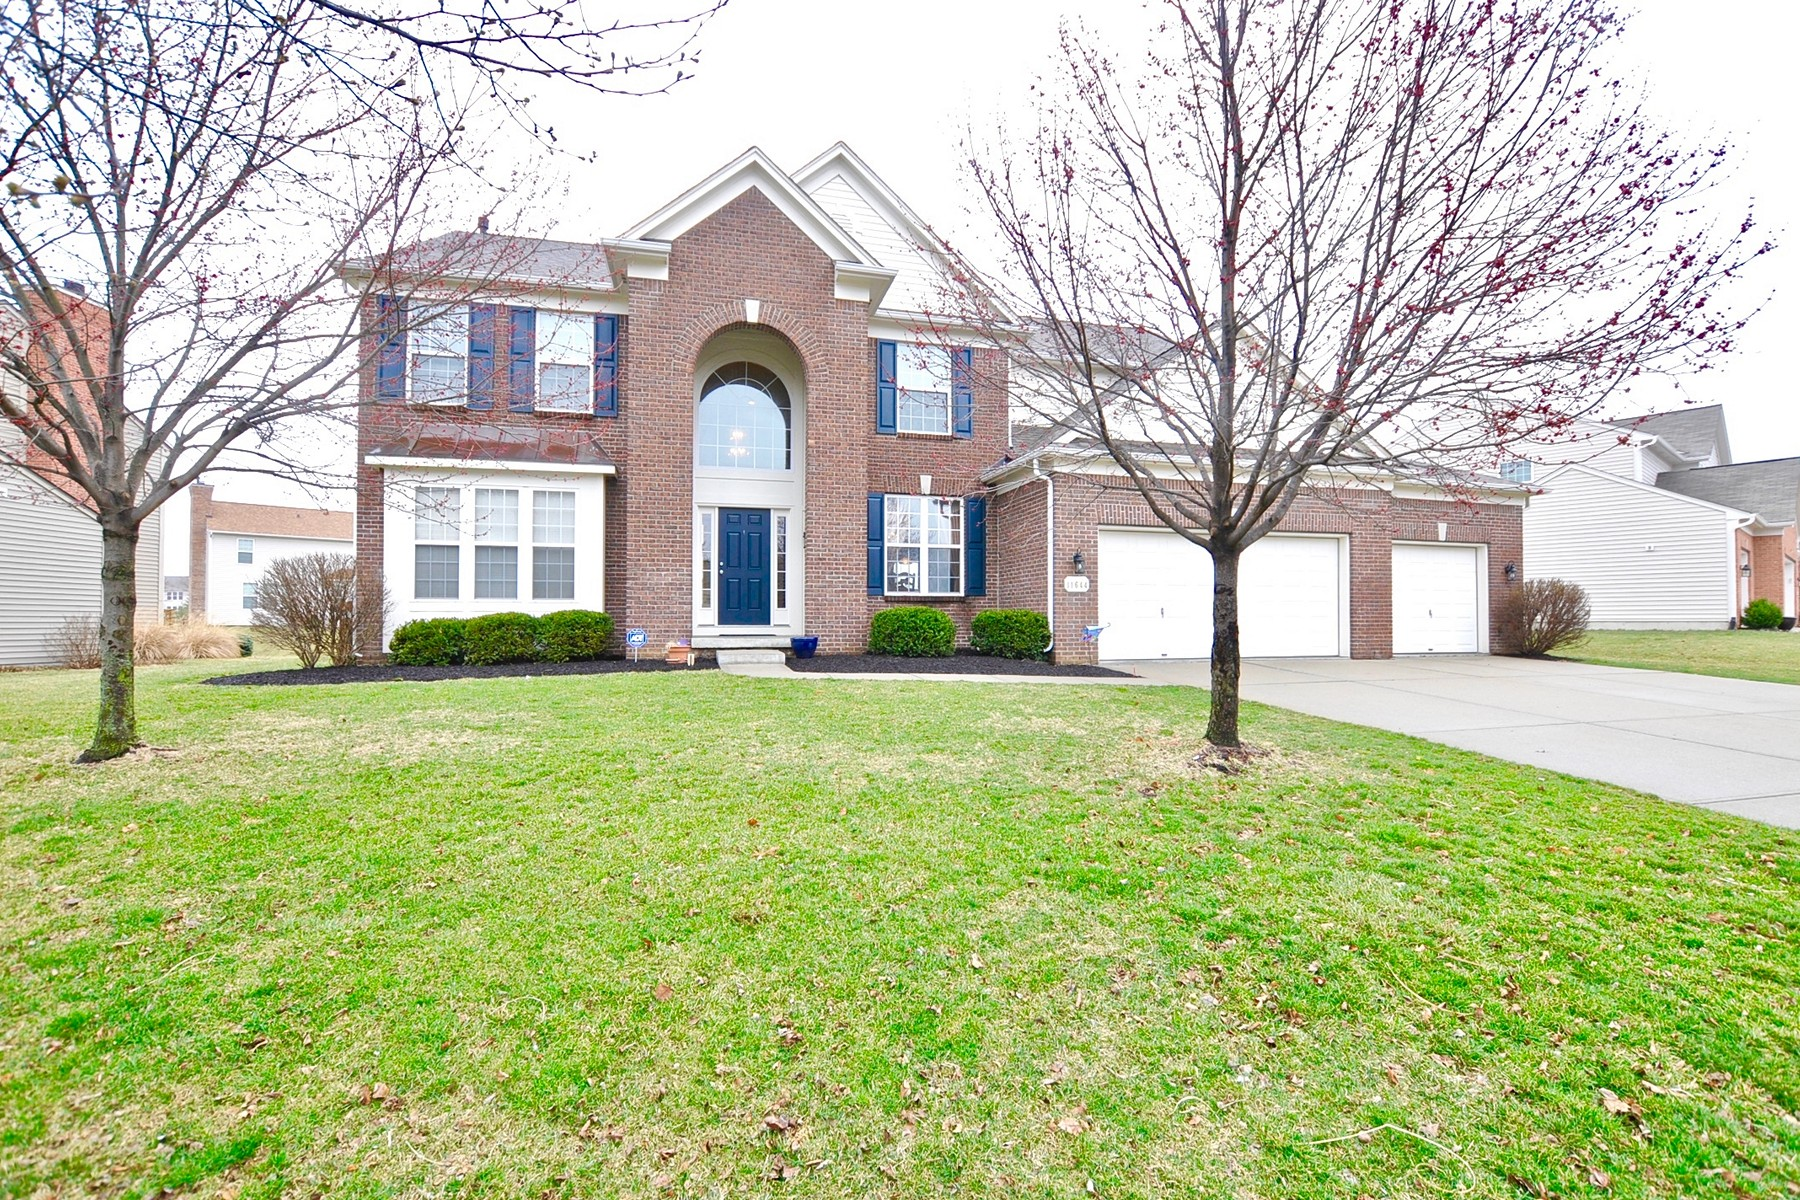 Single Family Home for Sale at Phenomenal Home! 11644 Suncatcher Drive Fishers, Indiana 46037 United States